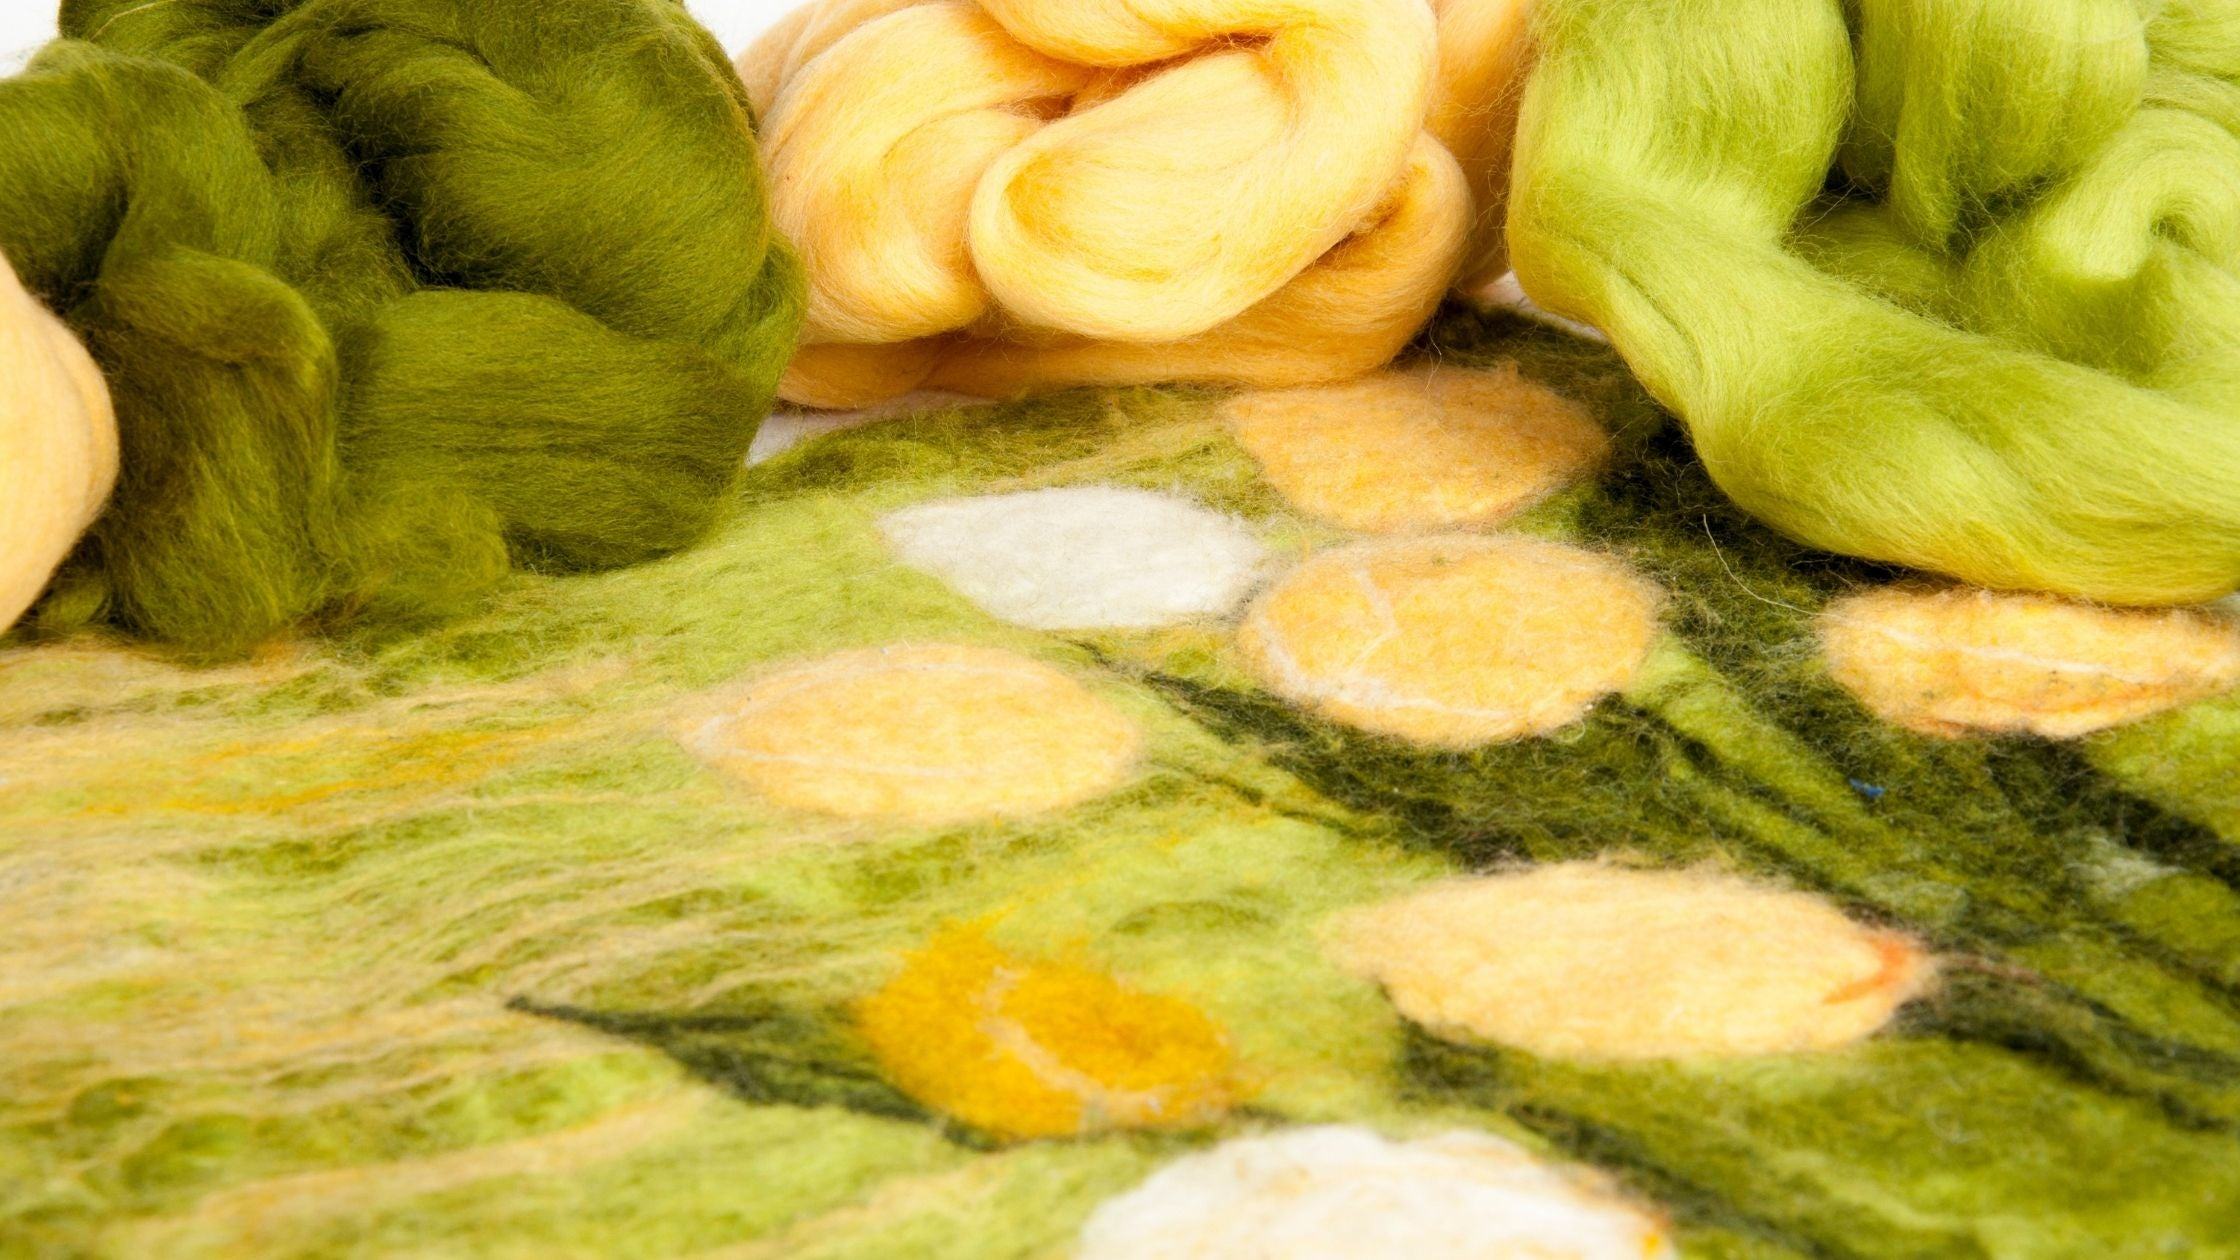 Felting, reFelting, relaxation, and consolidation. - why clothes shrink in the dryerlaxation, and consolidation.